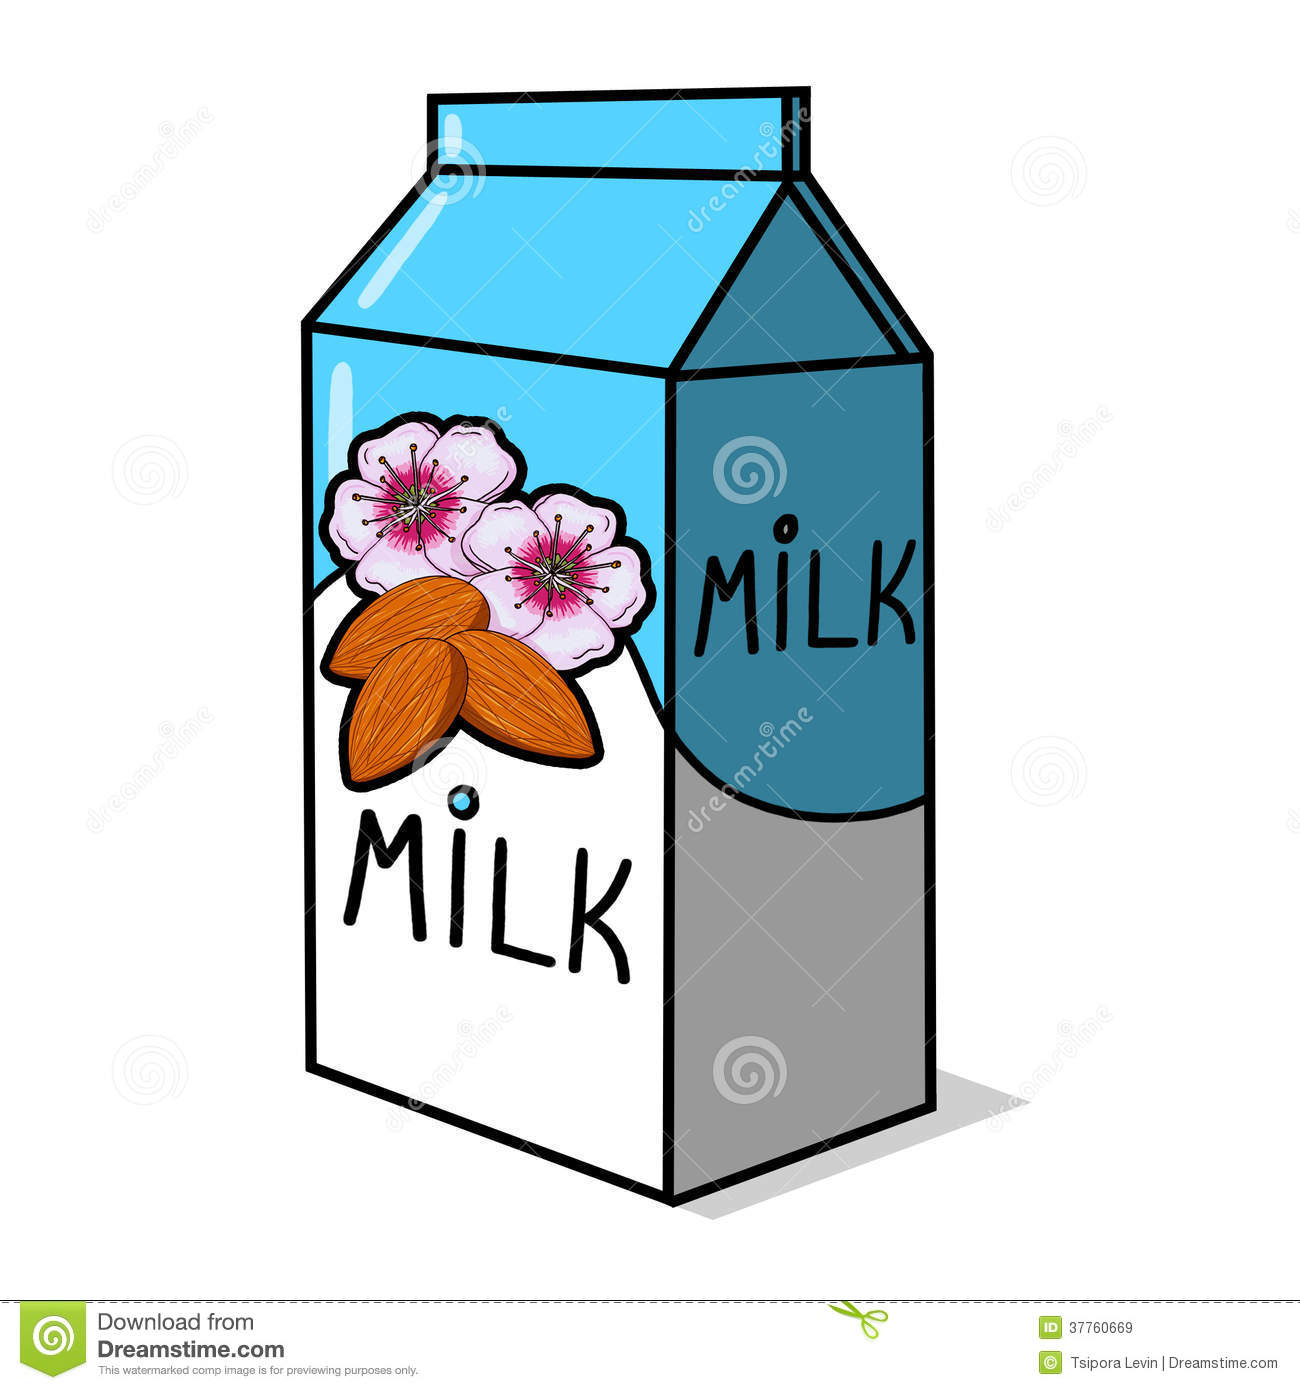 Royalty Free Stock Images: Almond Milk Carton Illustration.